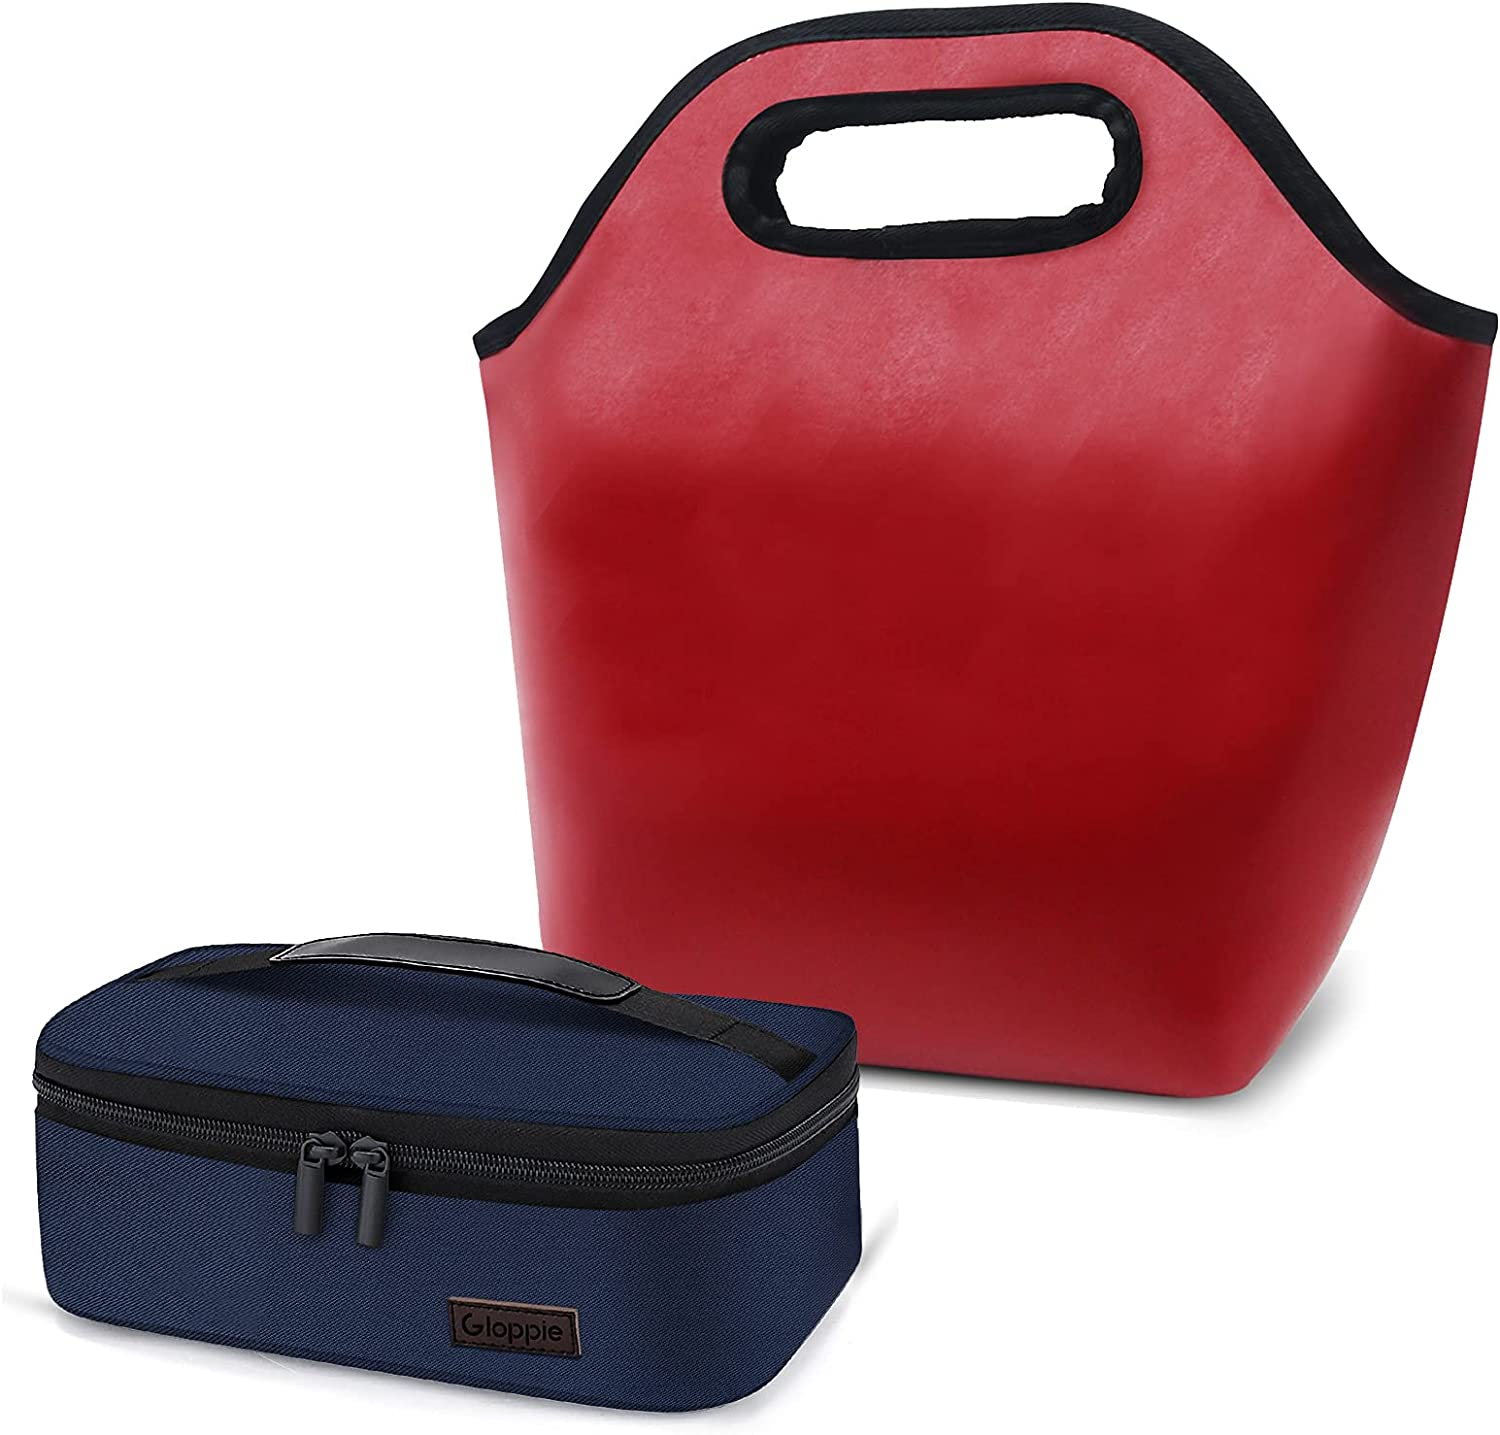 Gloppie Mini Insulated Lunchbox Branded goods for Bag Cheap super special price Wome Small Lunch Men